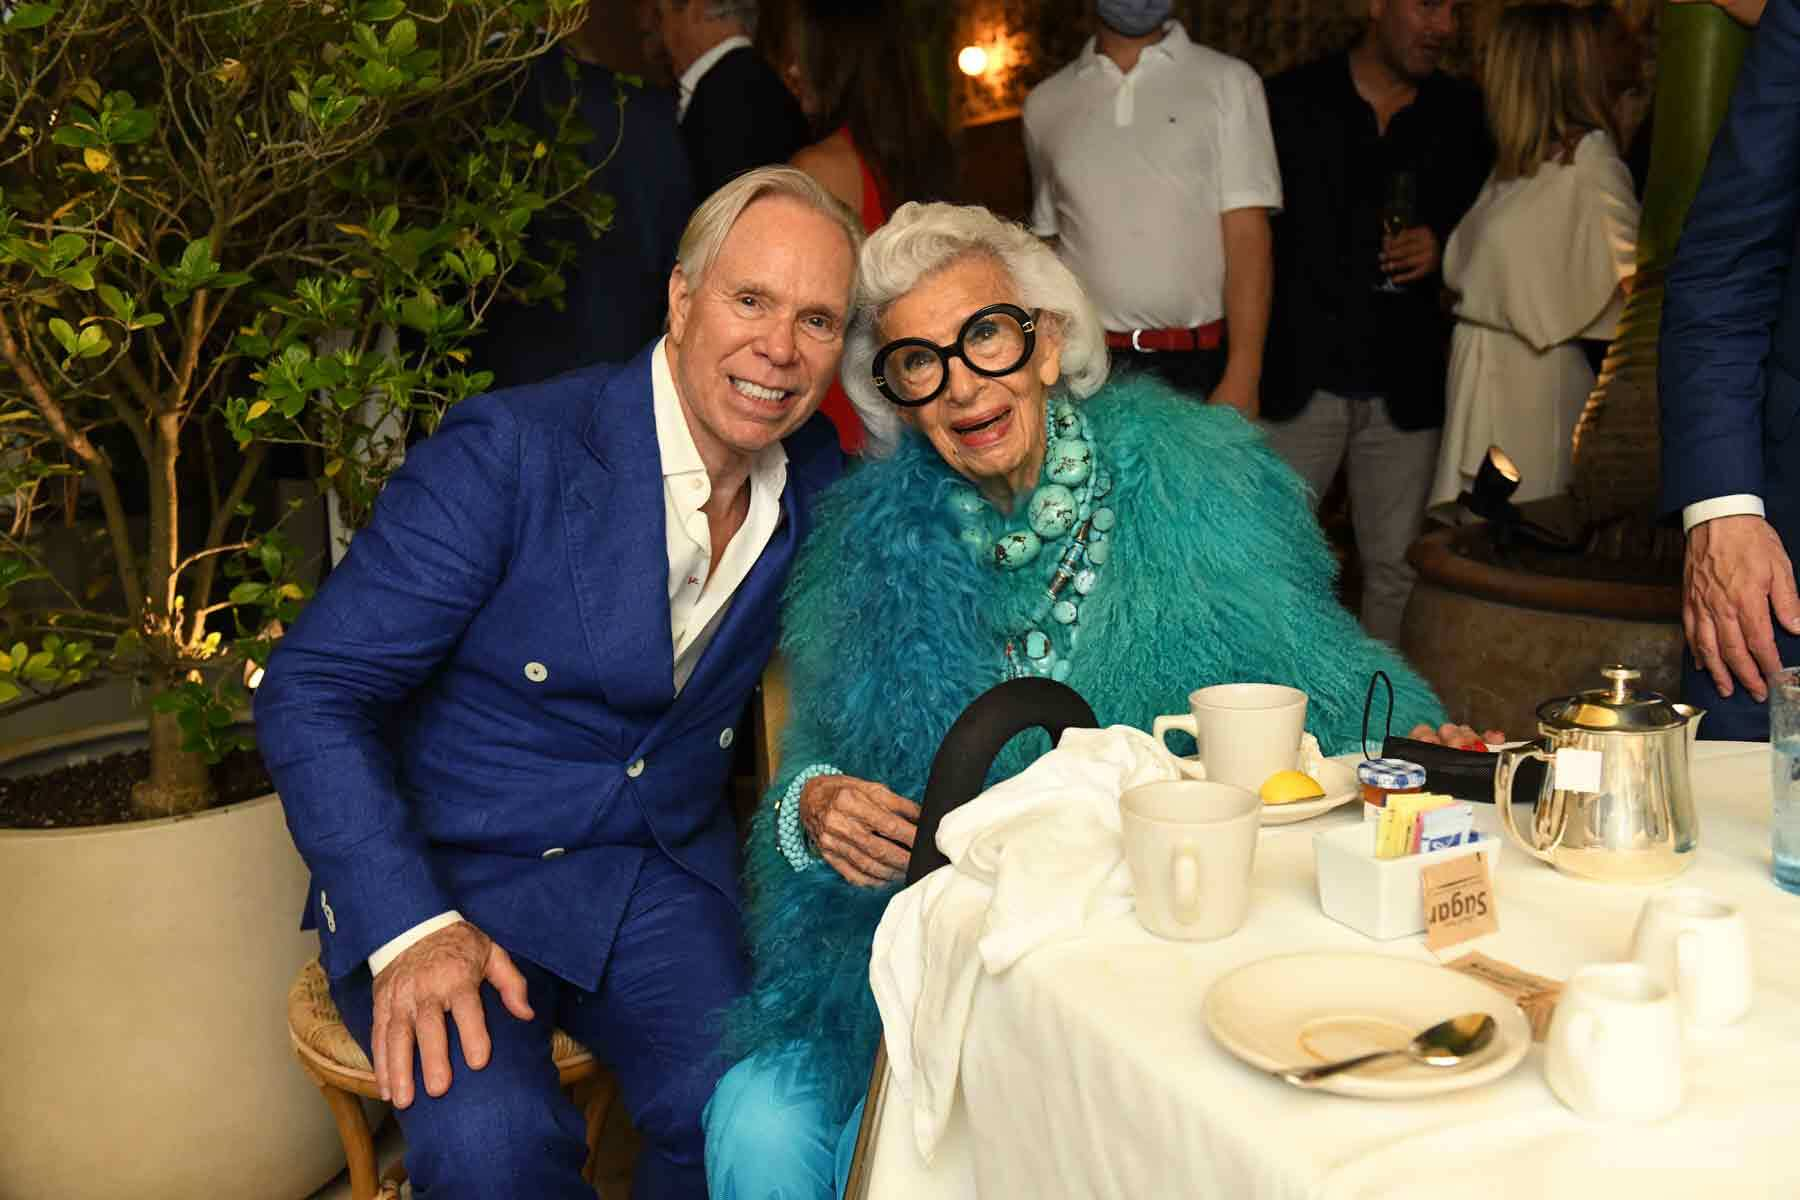 Iris Apfel and Tommy Hilfiger